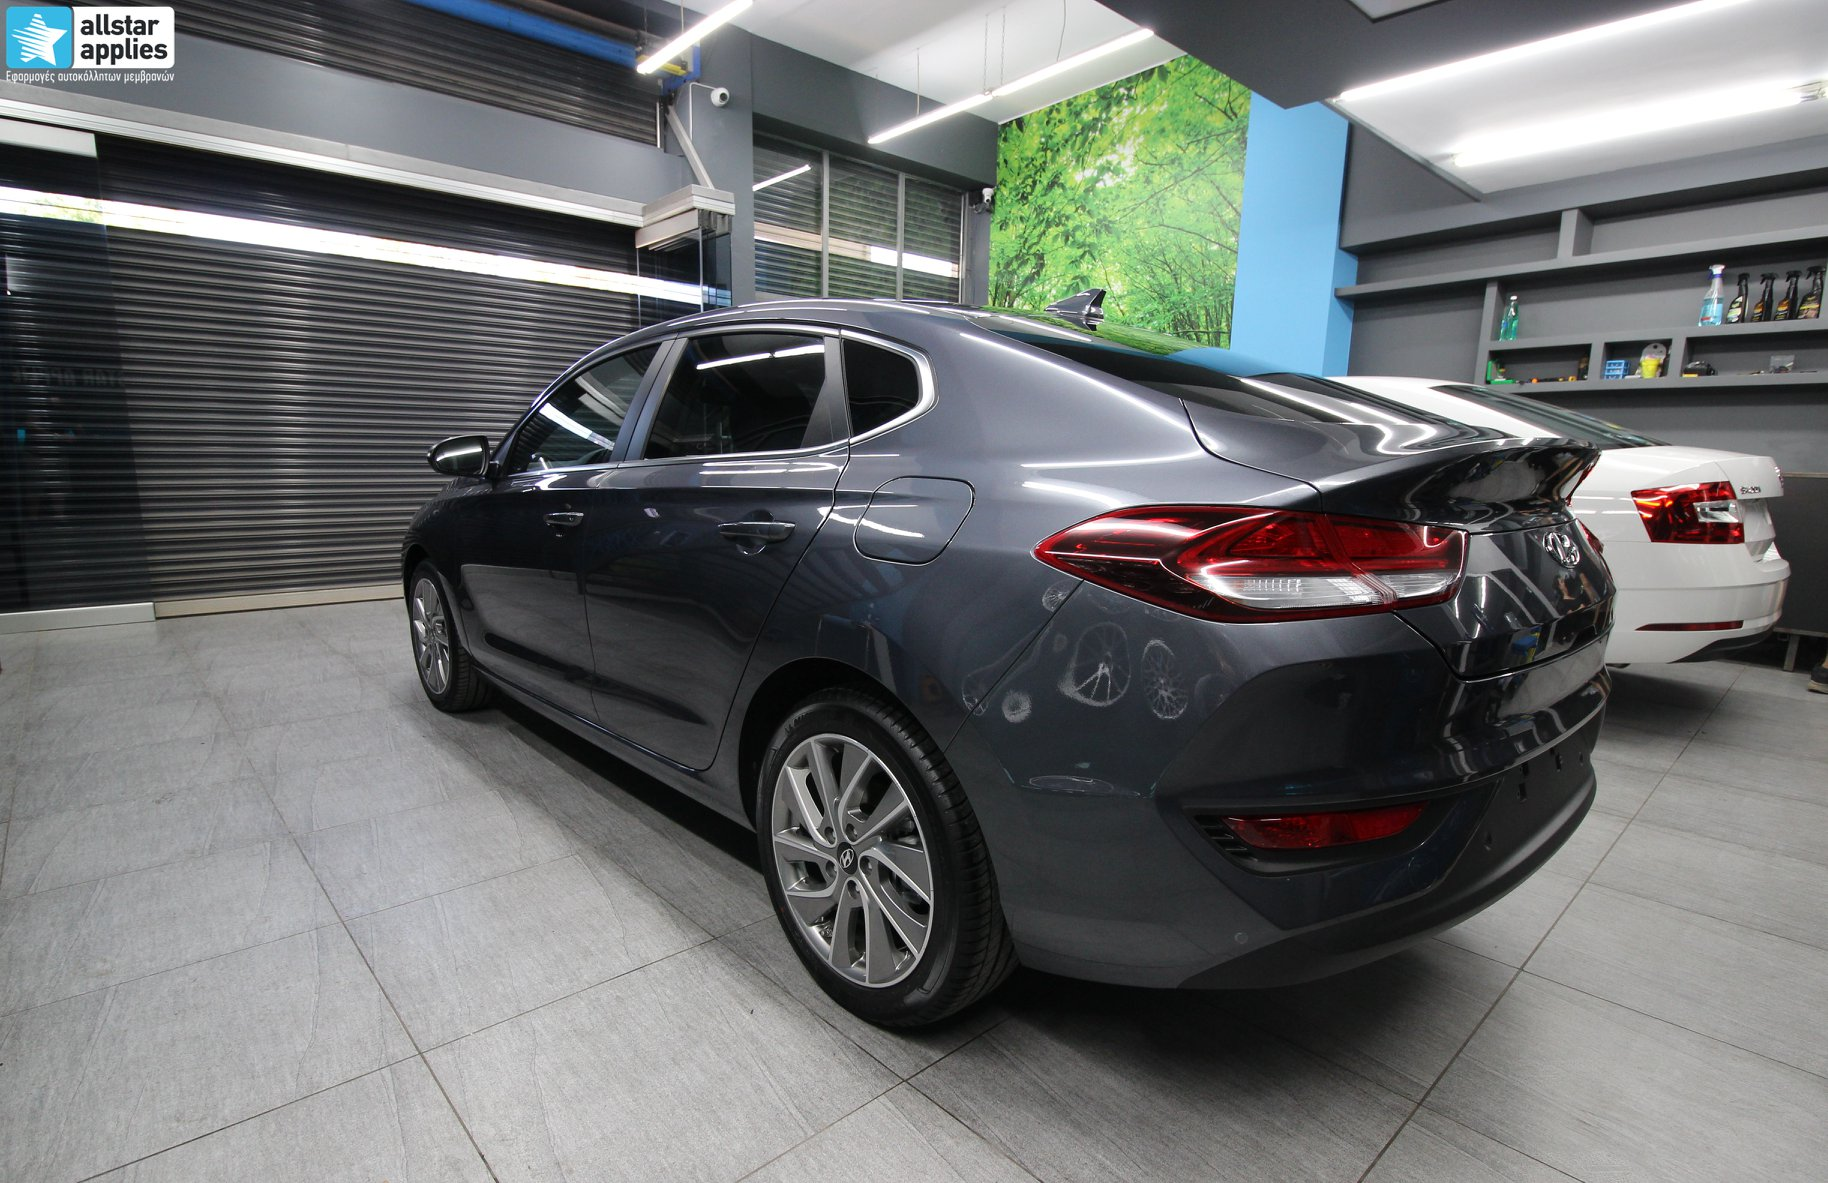 Hyundai i30 Fastback - Paint Protection Film (2)